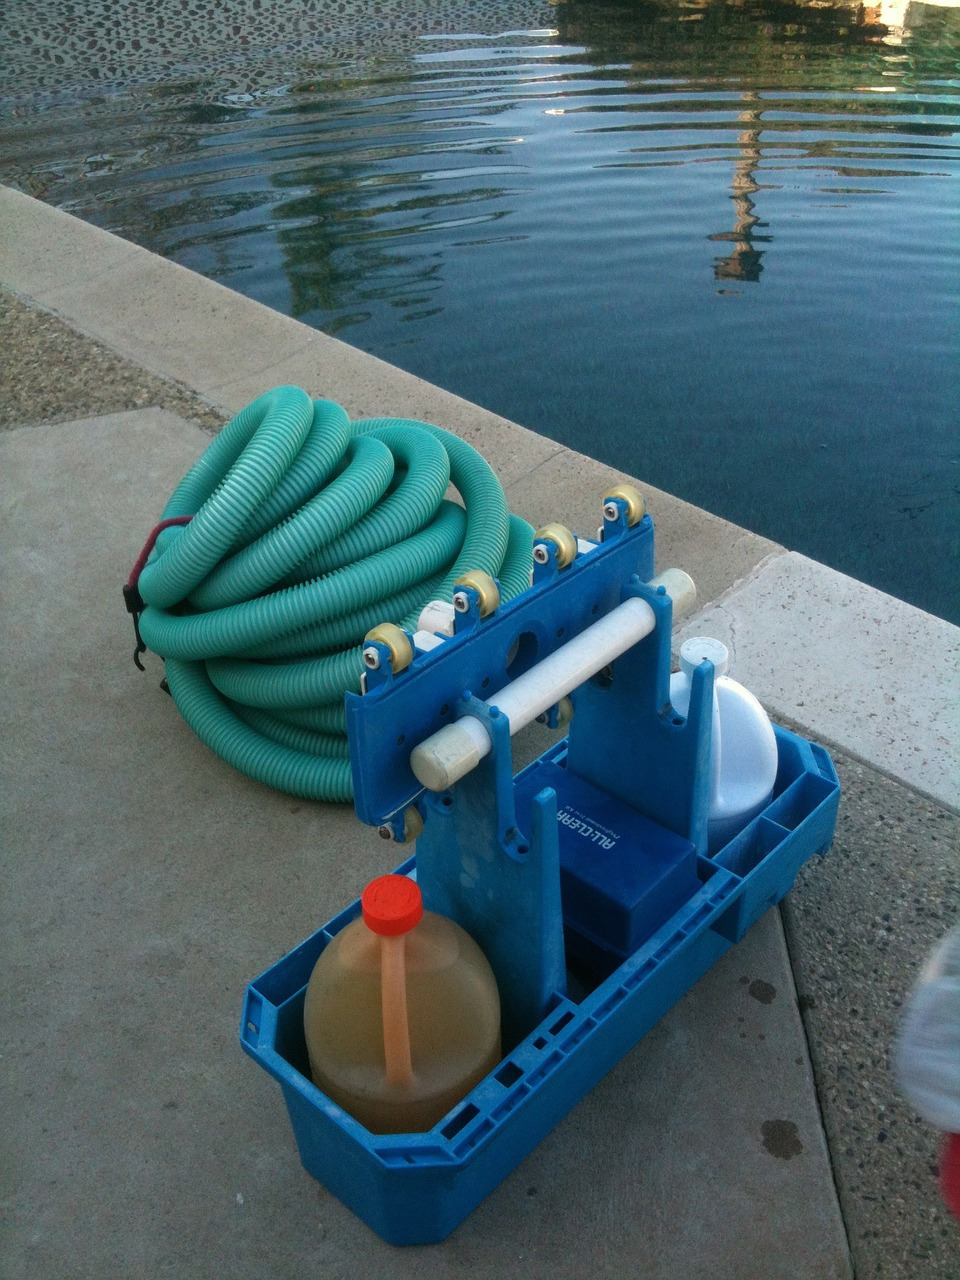 pool-cleaning-330406_1280(1)